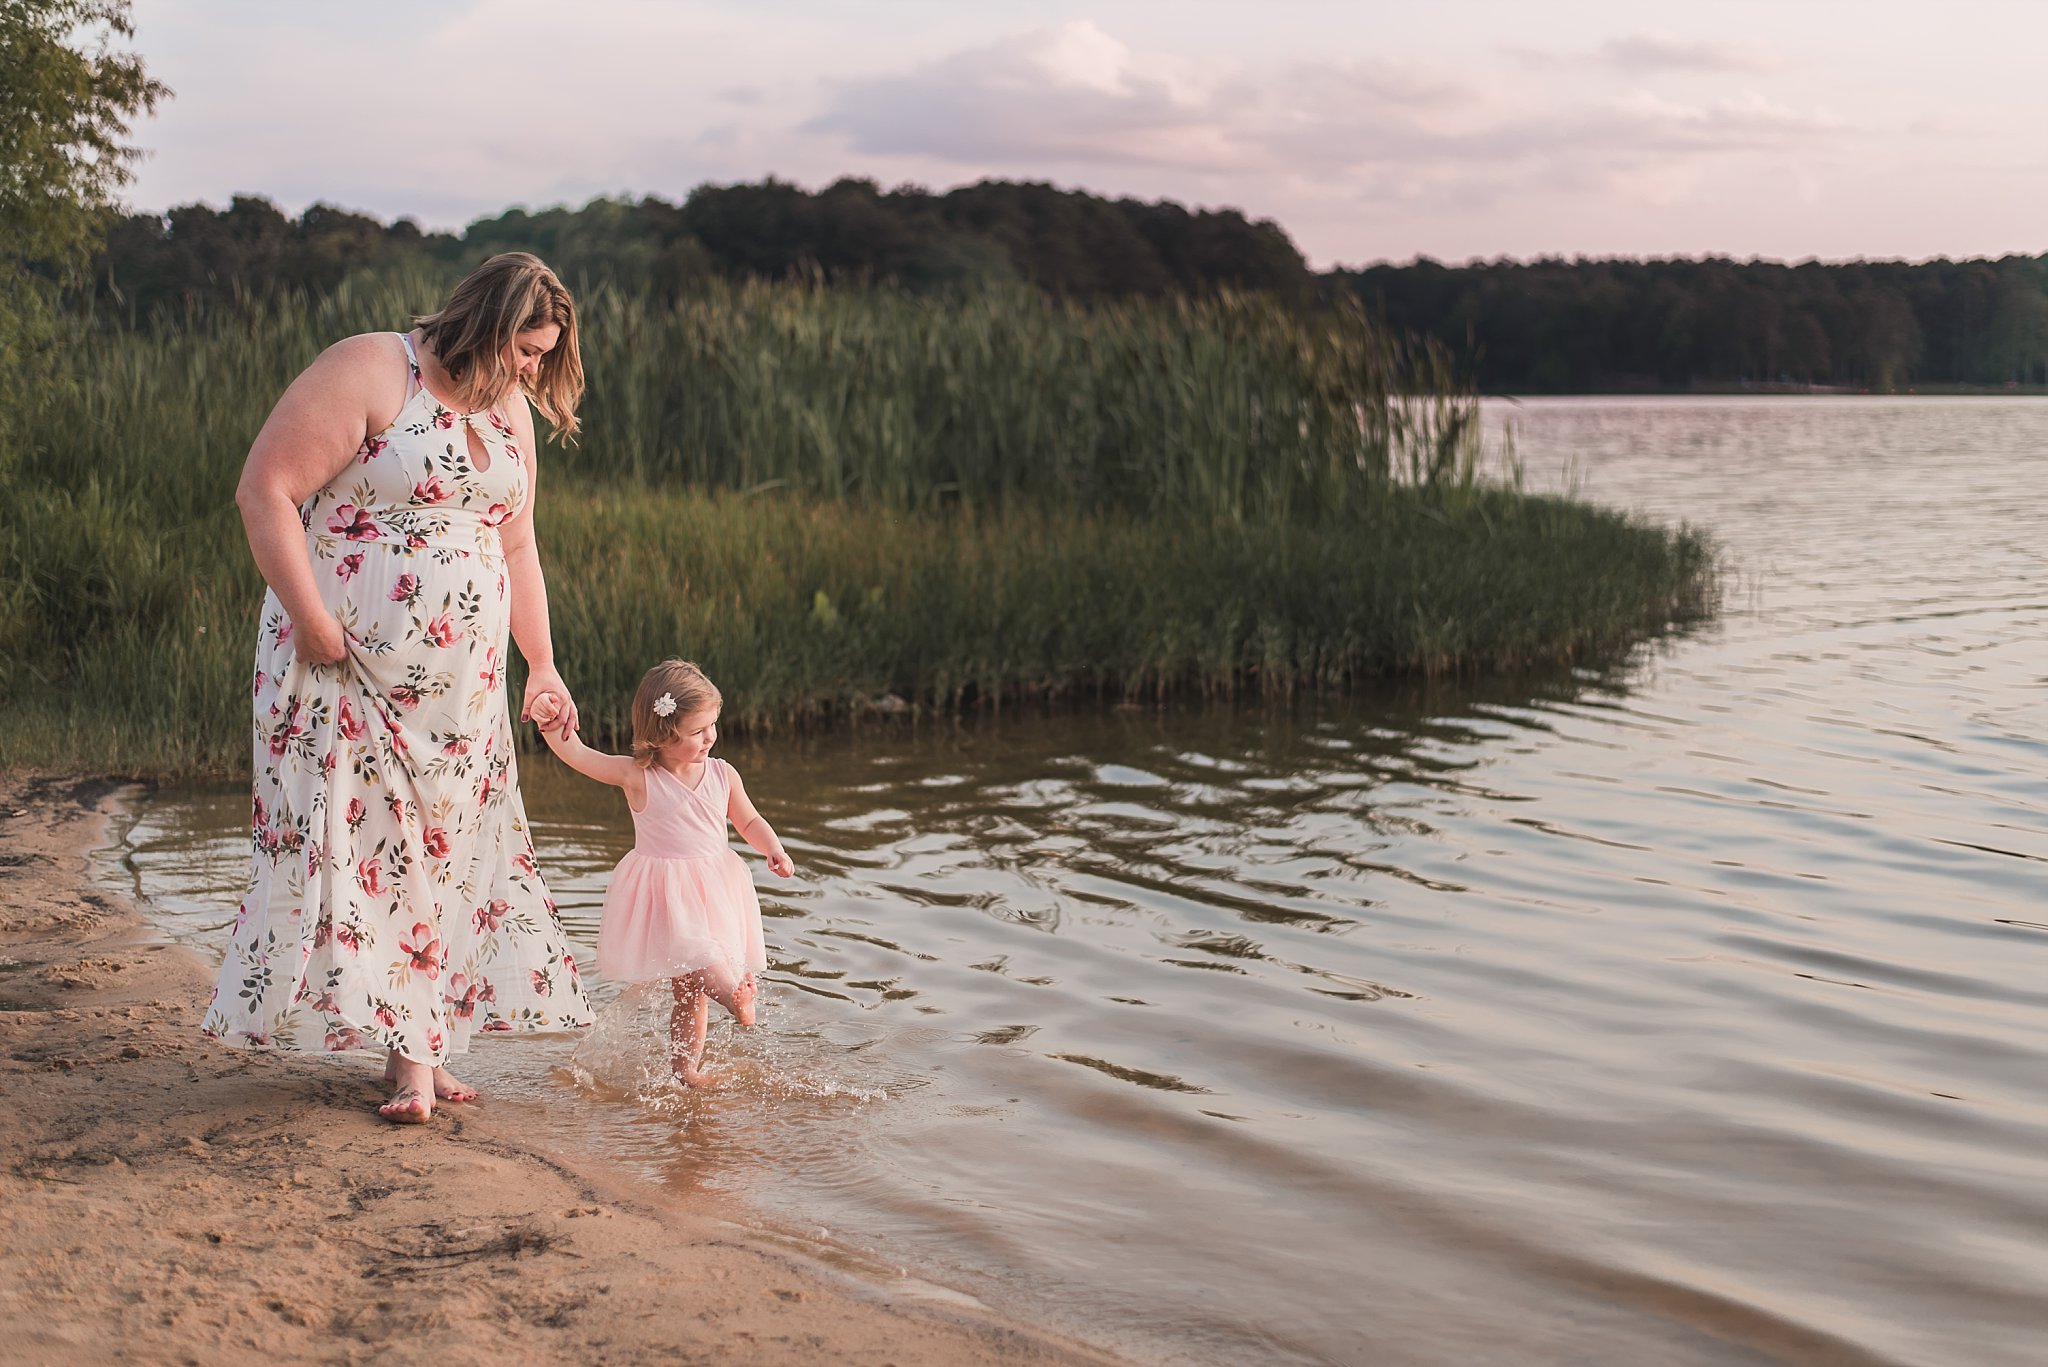 mother and daughter walking on beach Cauble Park Lake Acworth